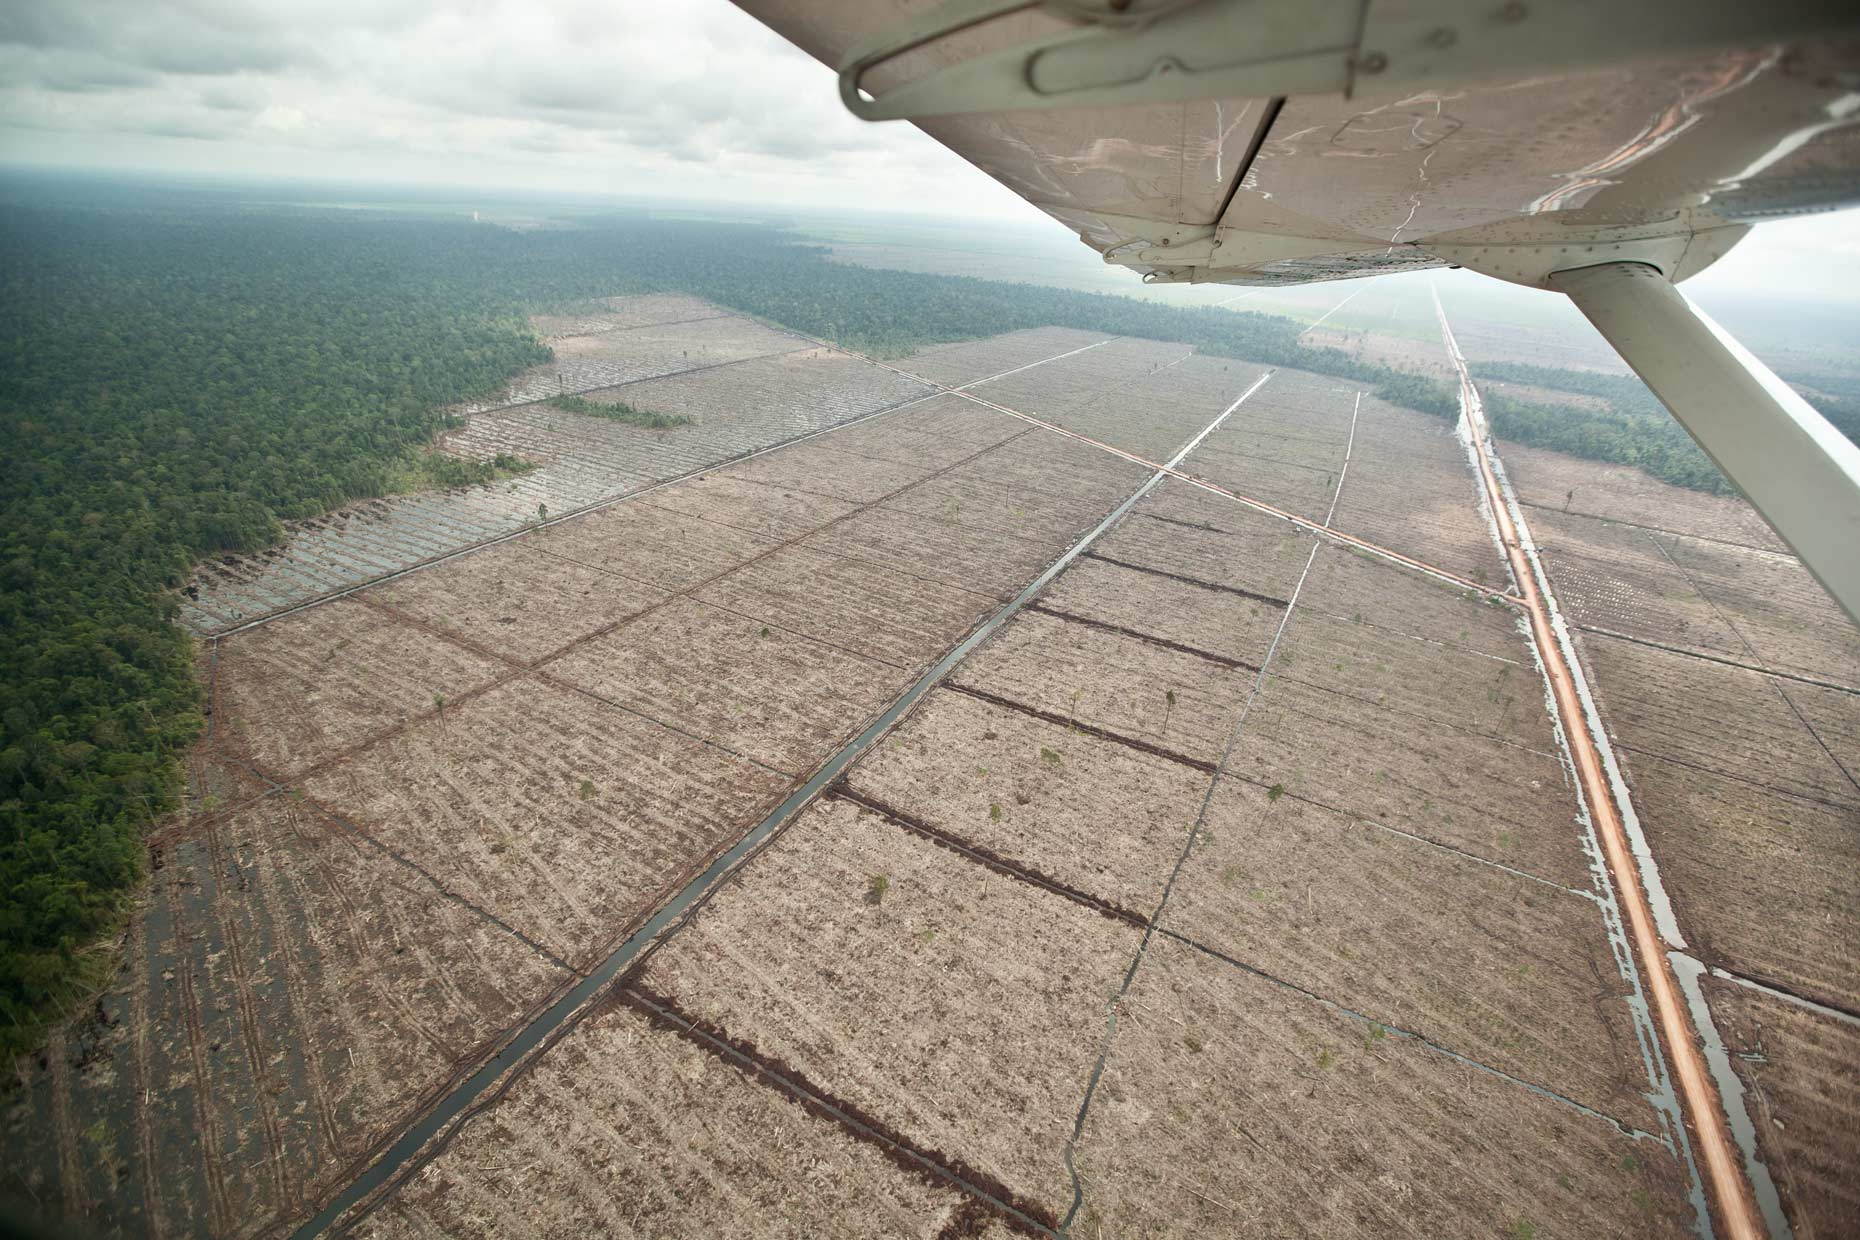 Virgin rainforest and clear cut logging, Indonesia, by Scotland Greenpeace photographer